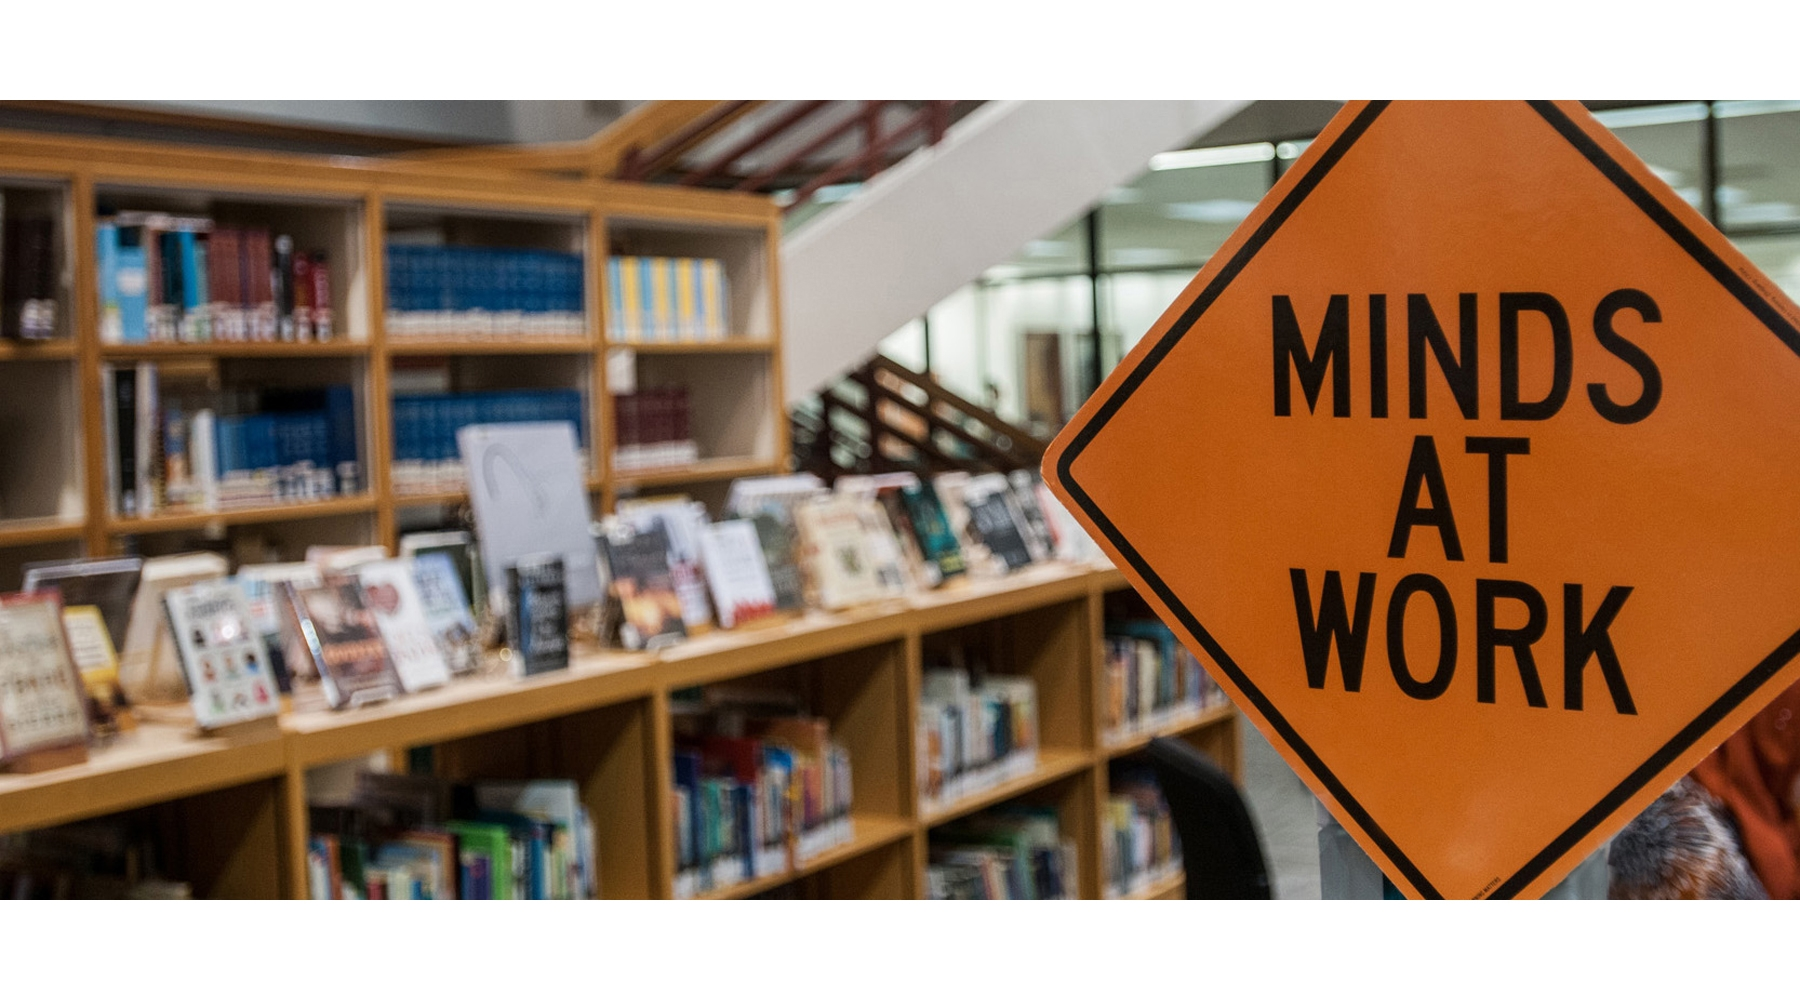 Library Minds At Work Sign 800